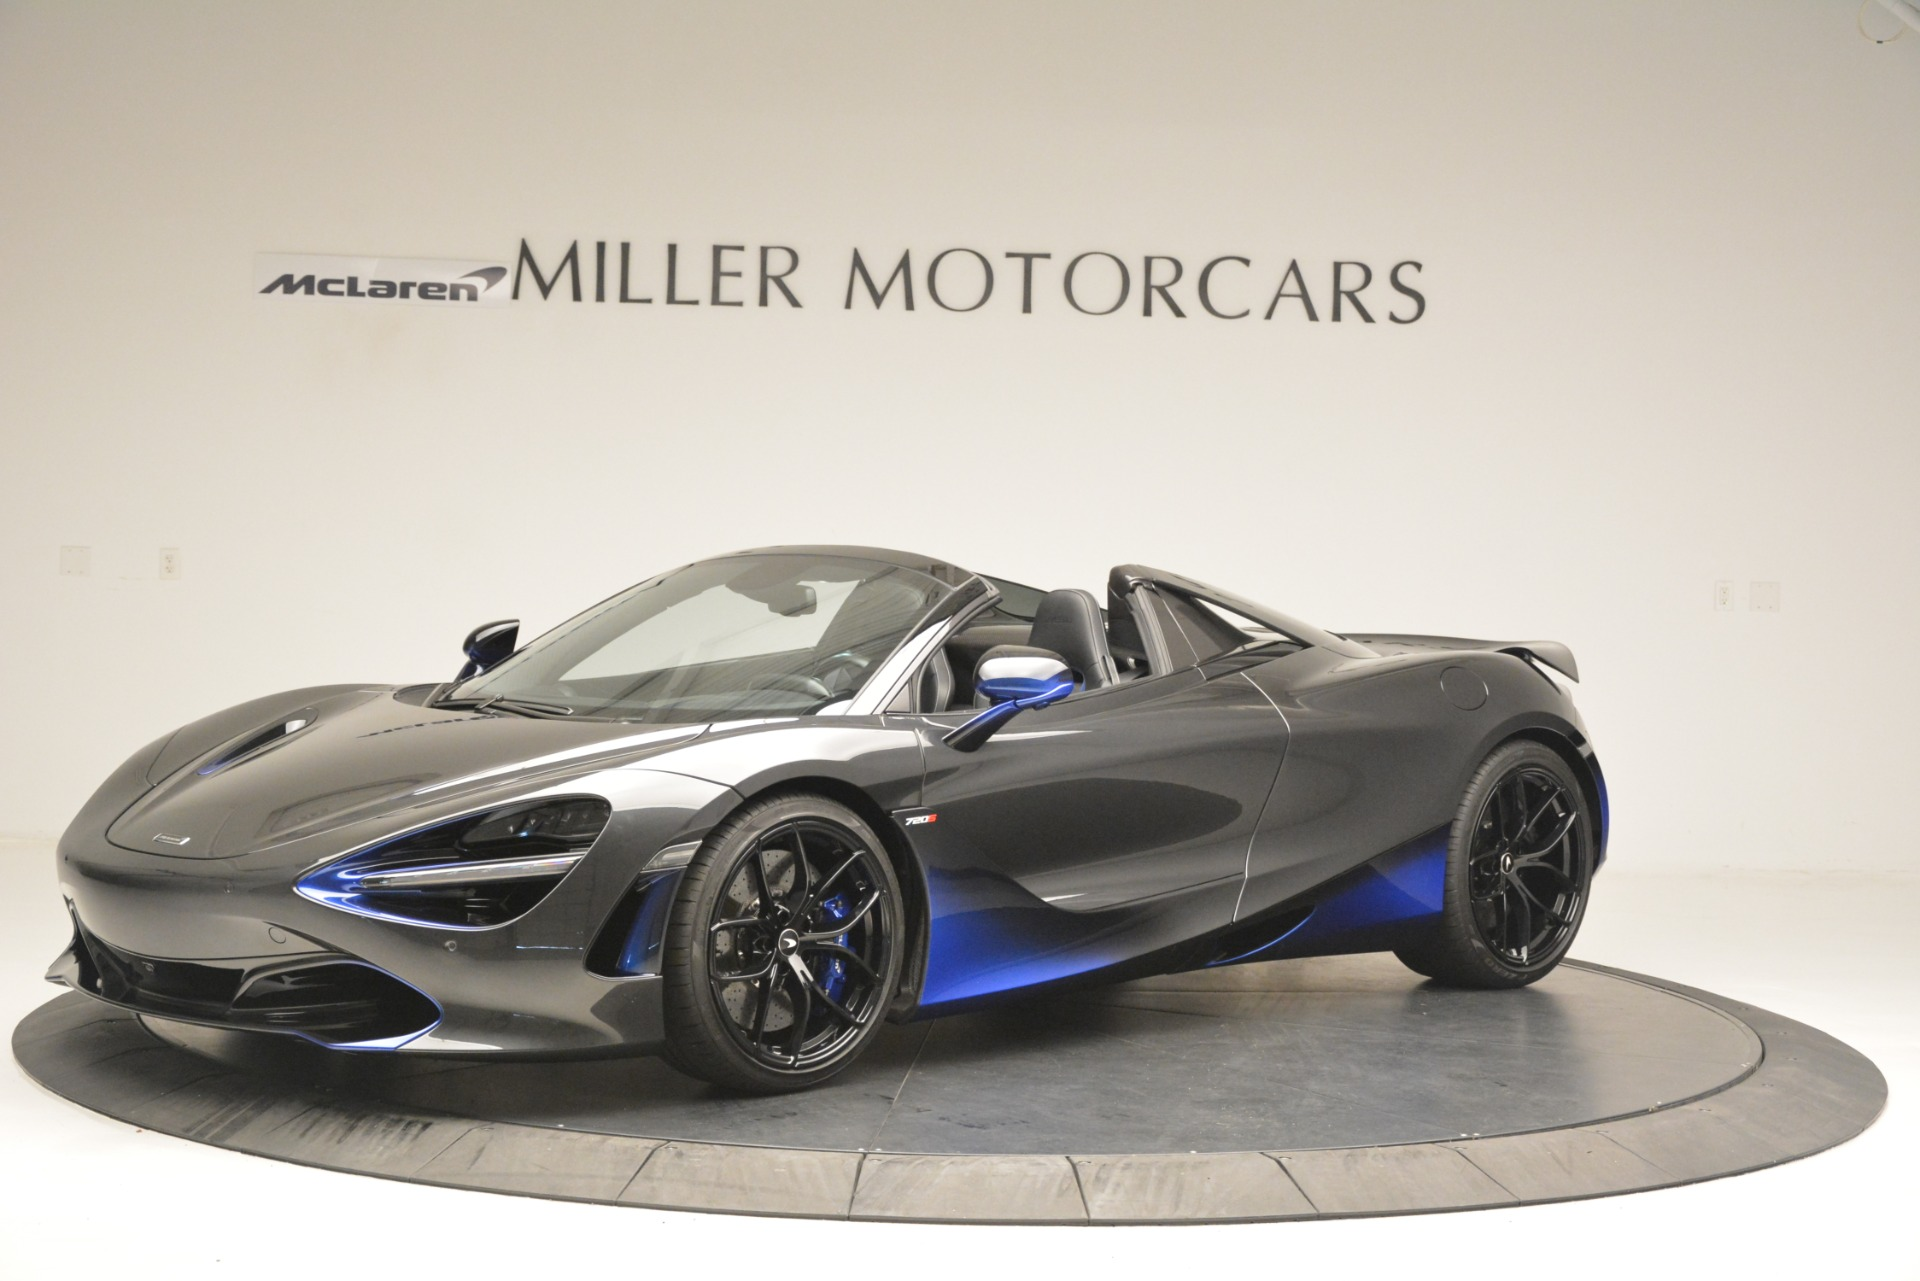 New 2020 McLaren 720s Spider for sale Sold at Bugatti of Greenwich in Greenwich CT 06830 1